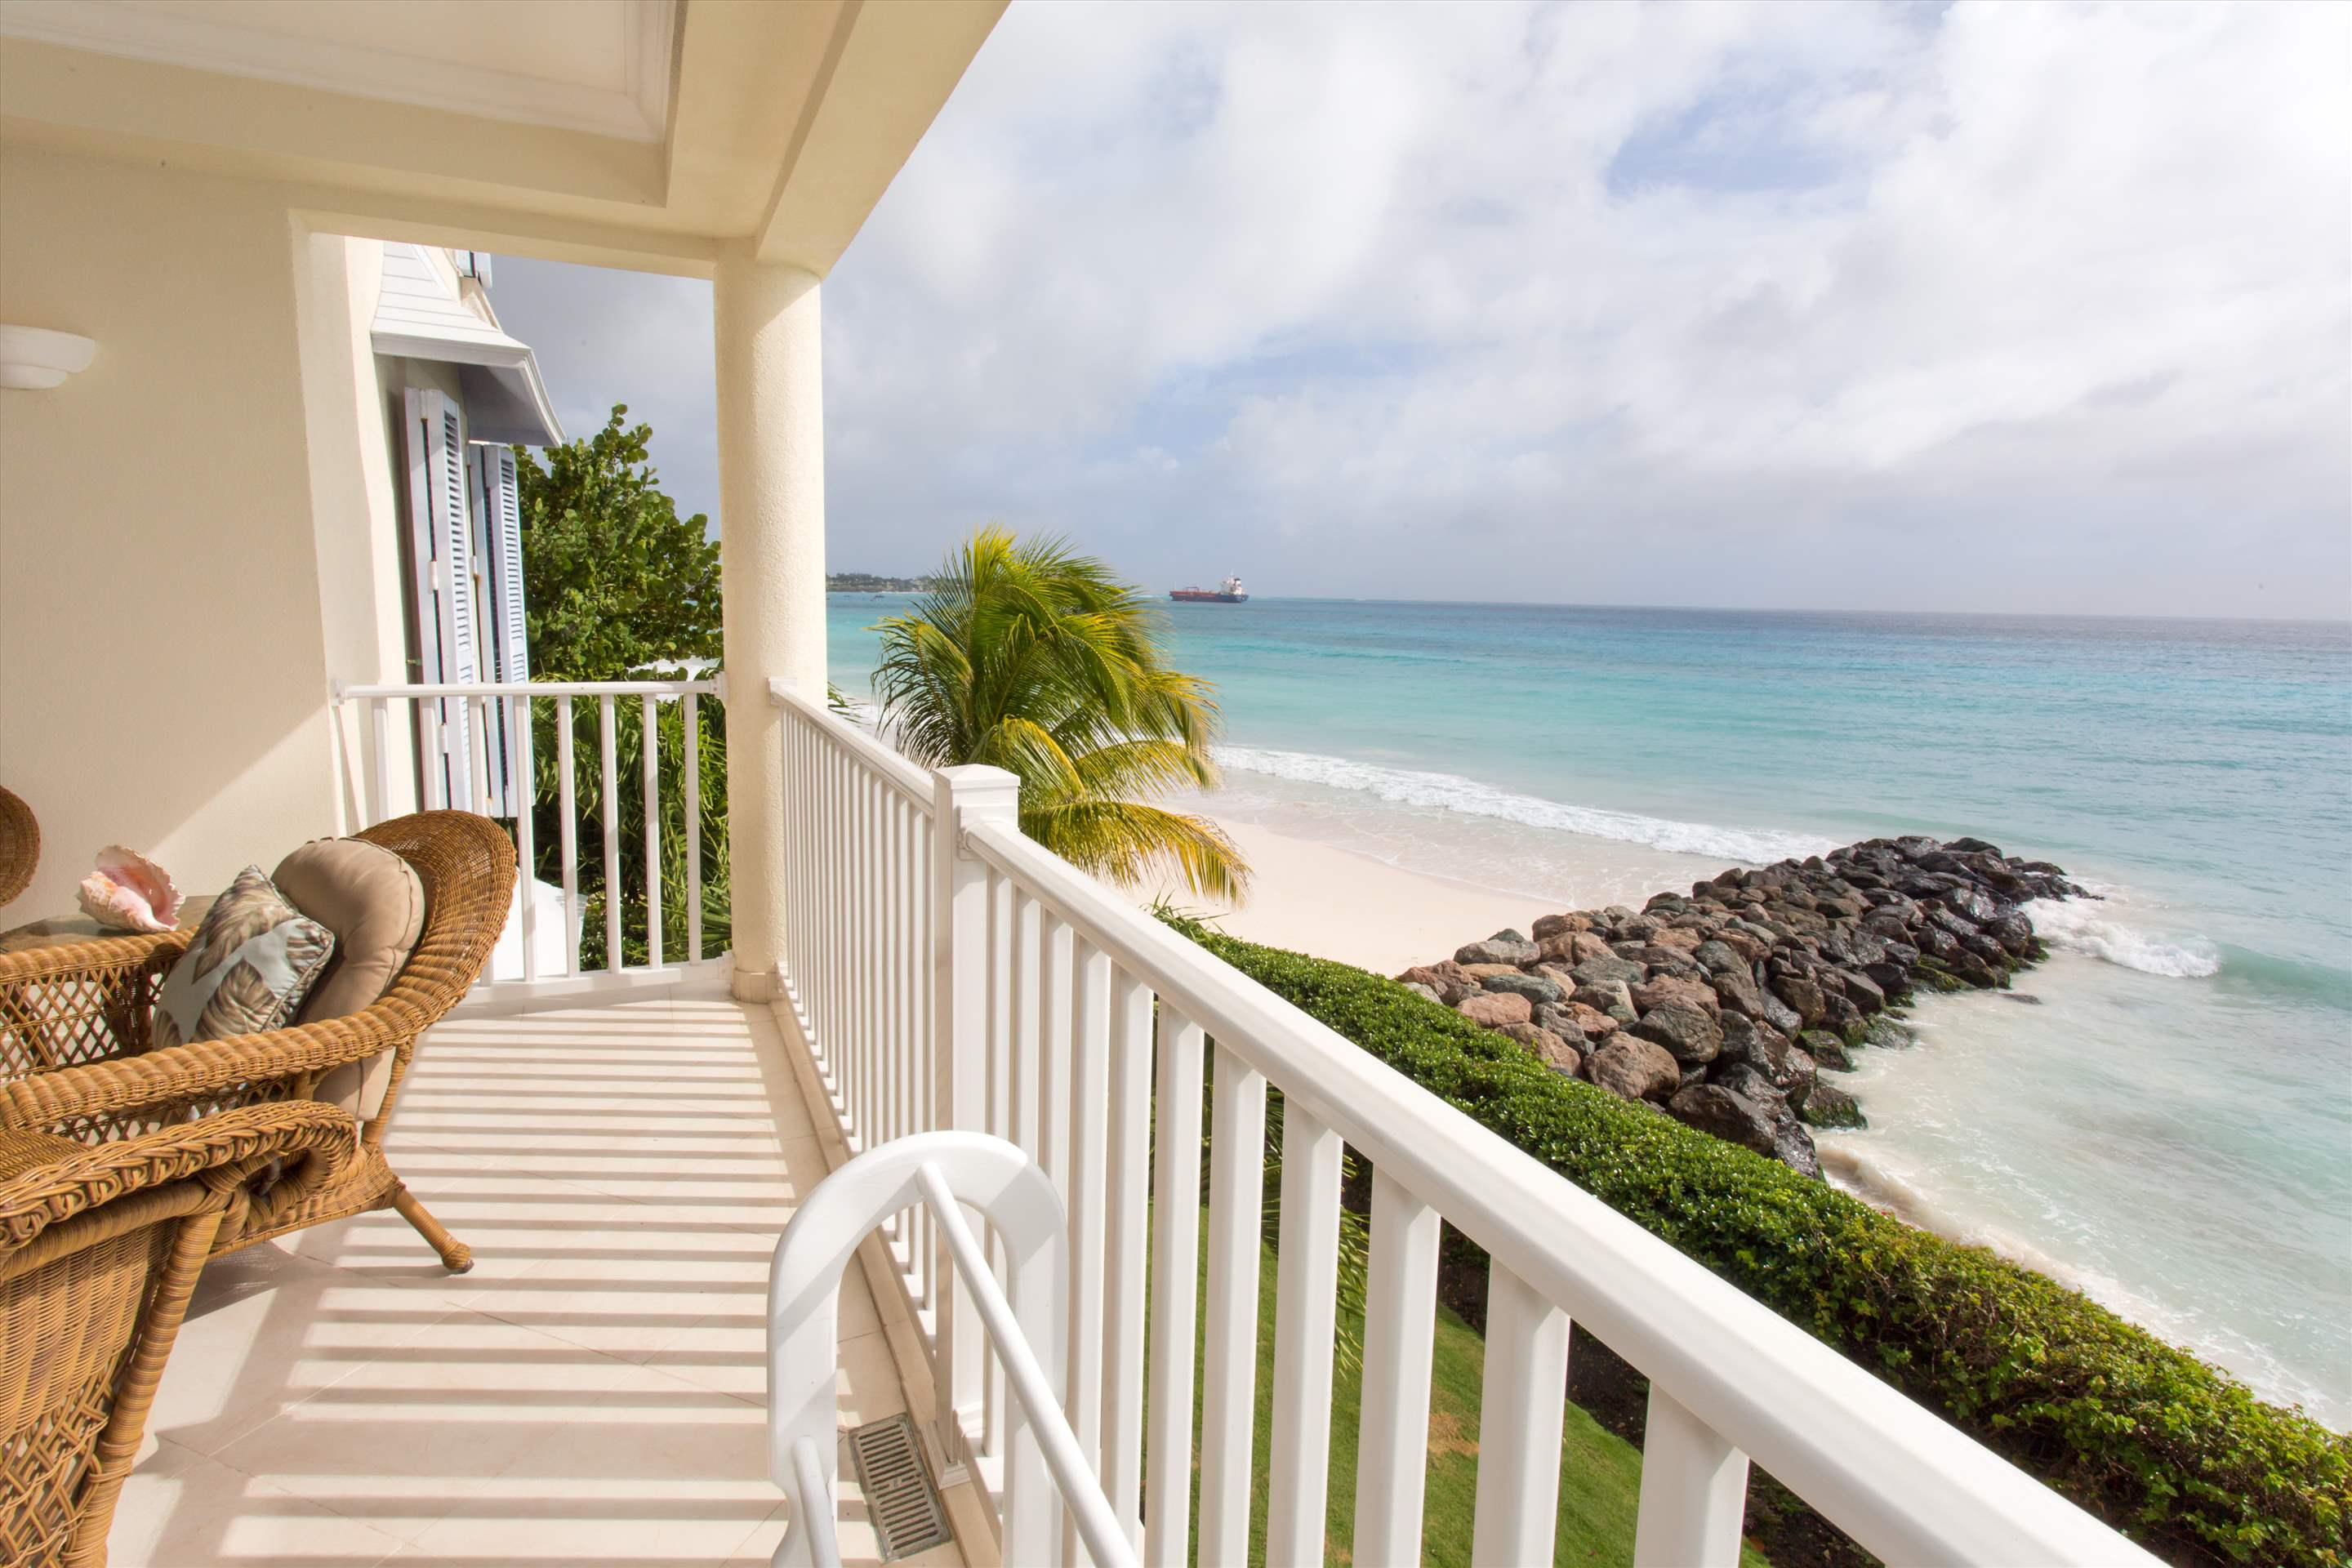 Sandy Hook 21, 2 bedroom, 2 bedroom villa in St. Lawrence Gap & South Coast, Barbados Photo #1